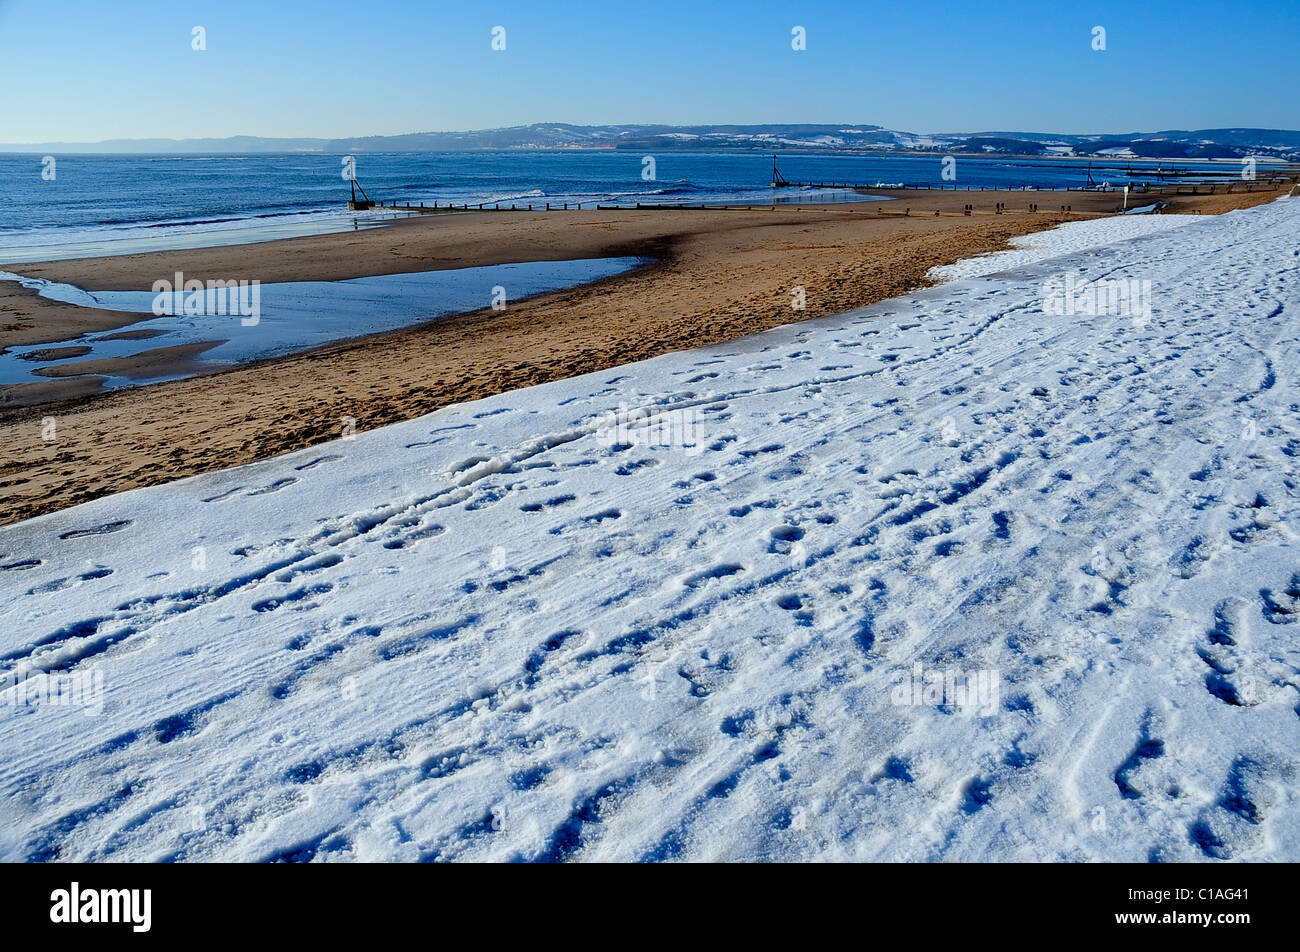 Exmouth beach (seafront) covered in some snow - Devon - Stock Image